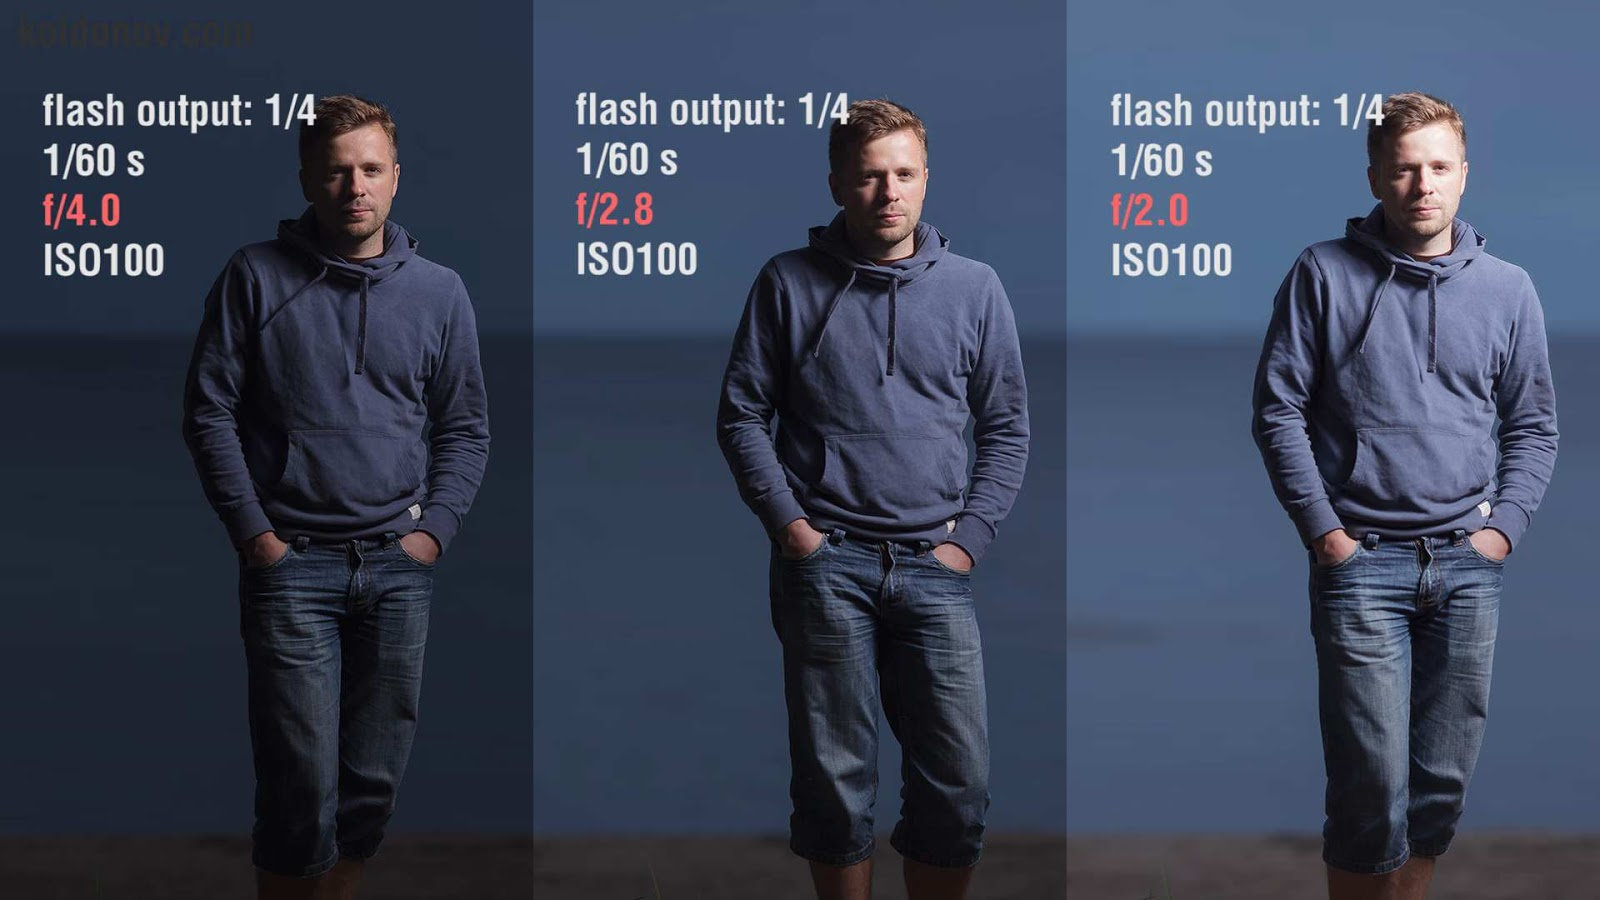 Outdoor Flash Photography: The basic settings